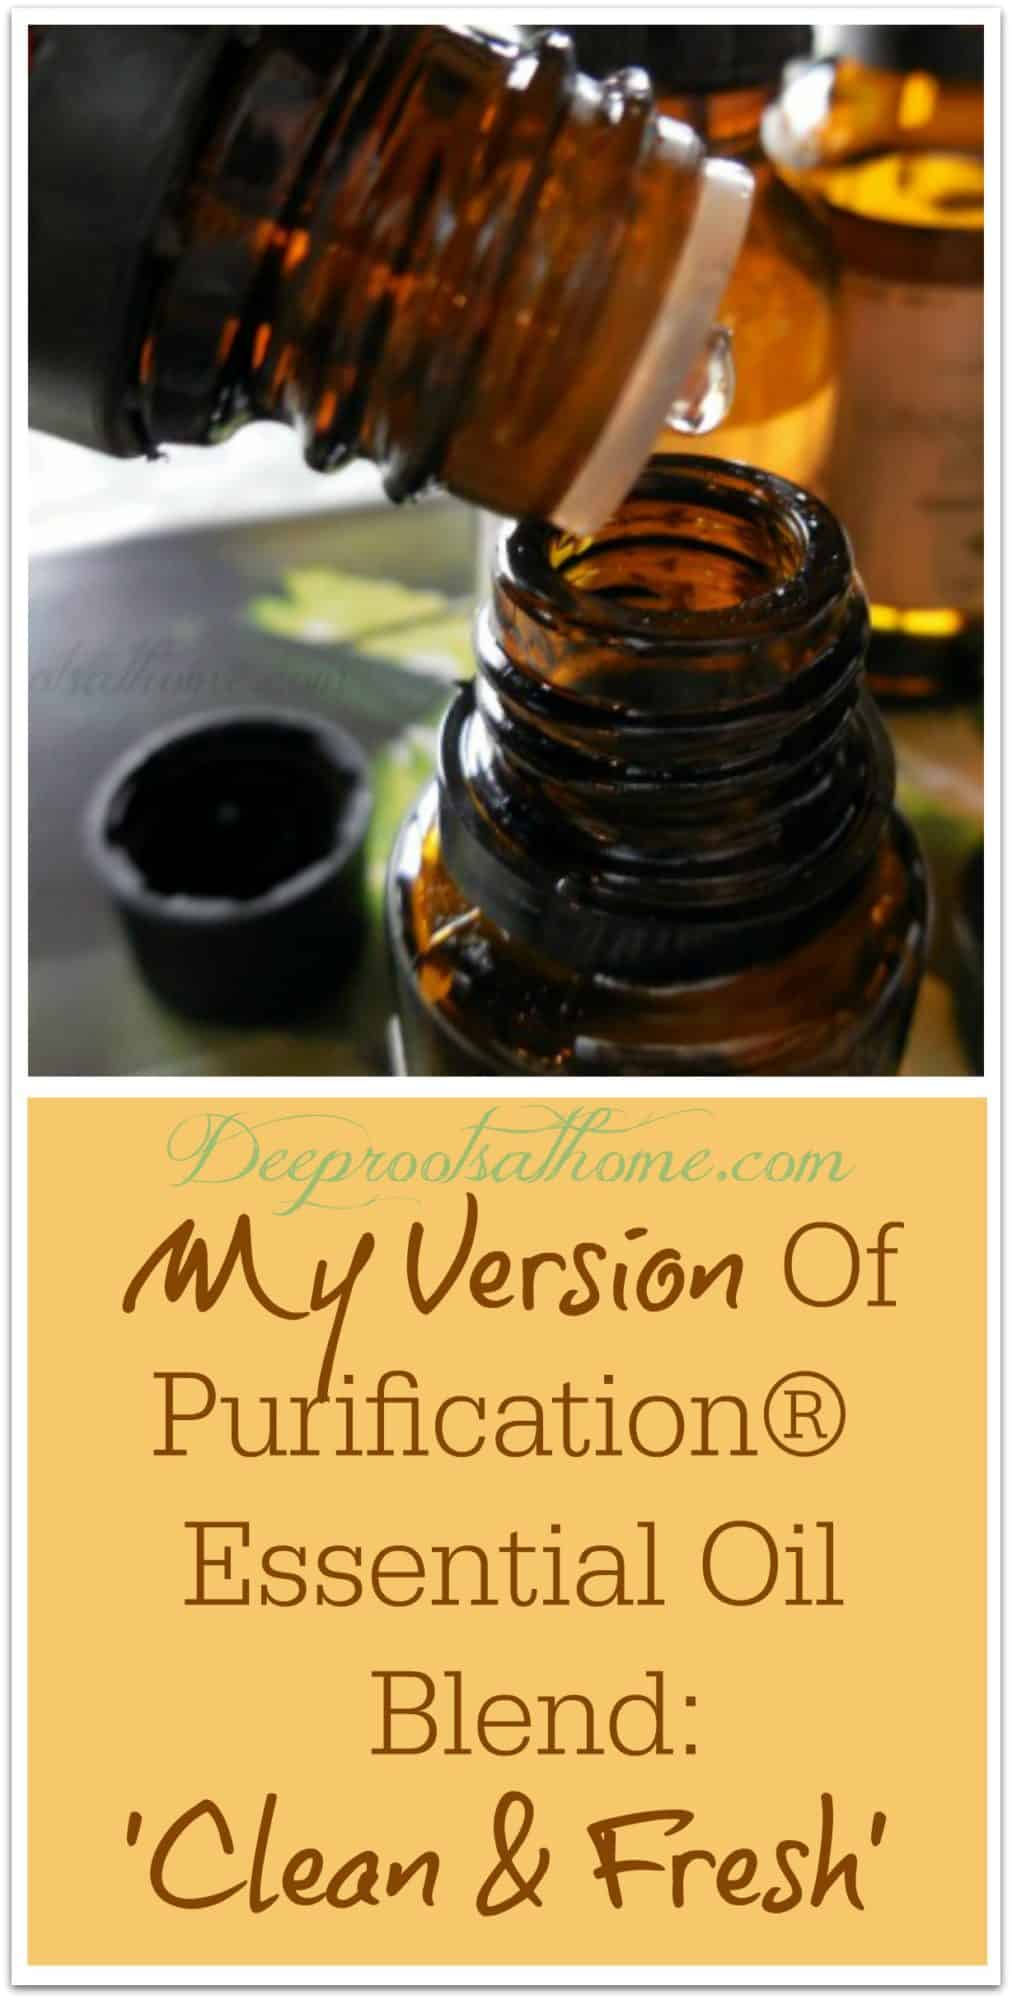 My Version Of The Well-Known Purification® Essential Oil Blend